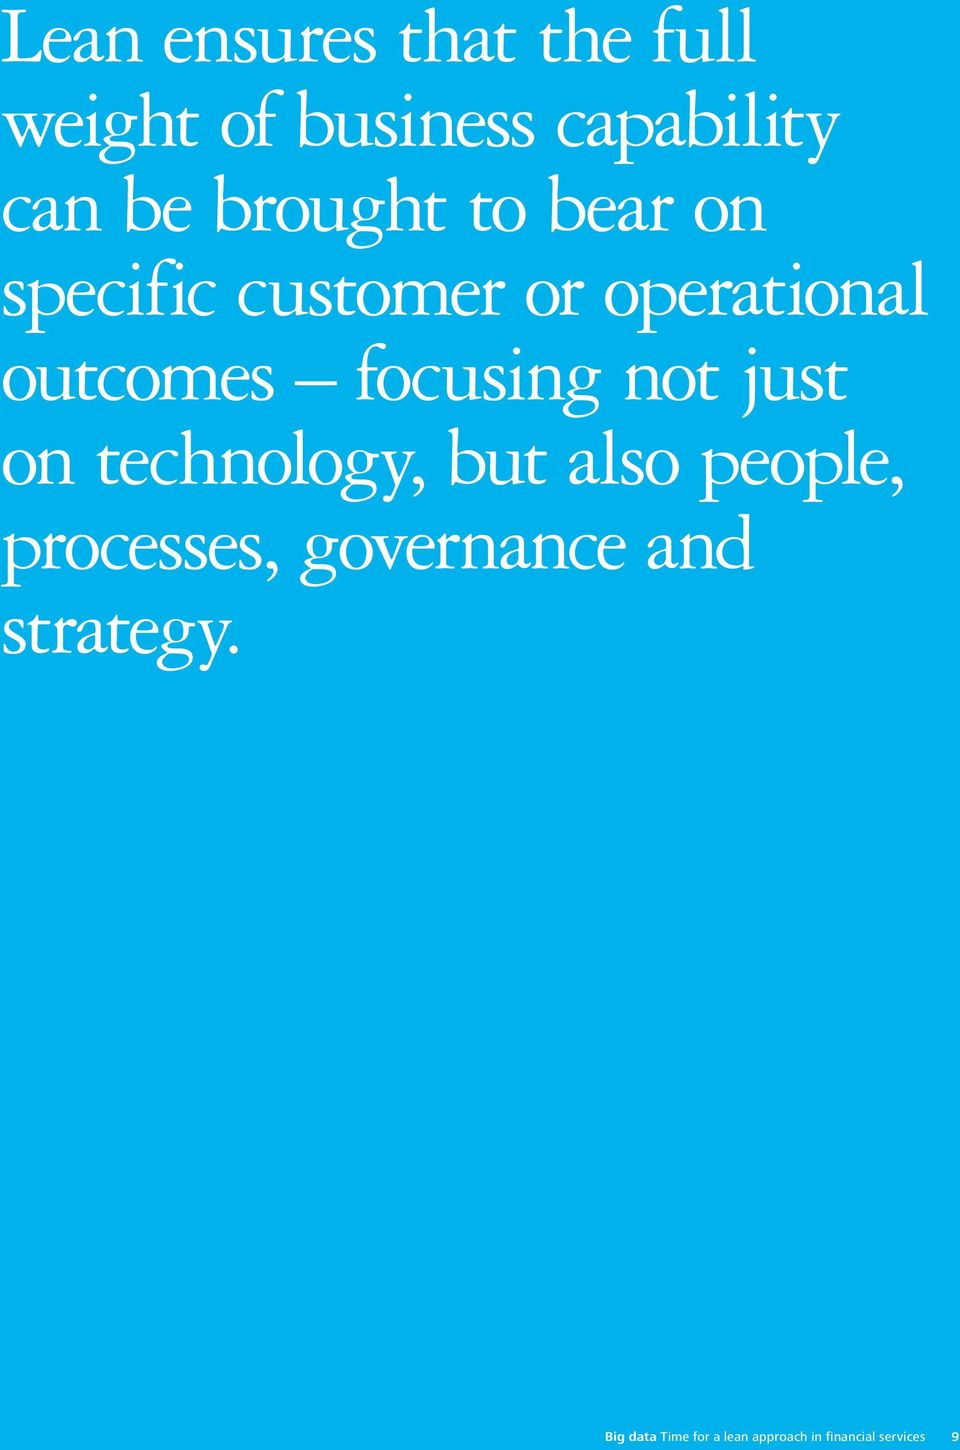 focusing not just on technology, but also people, processes,